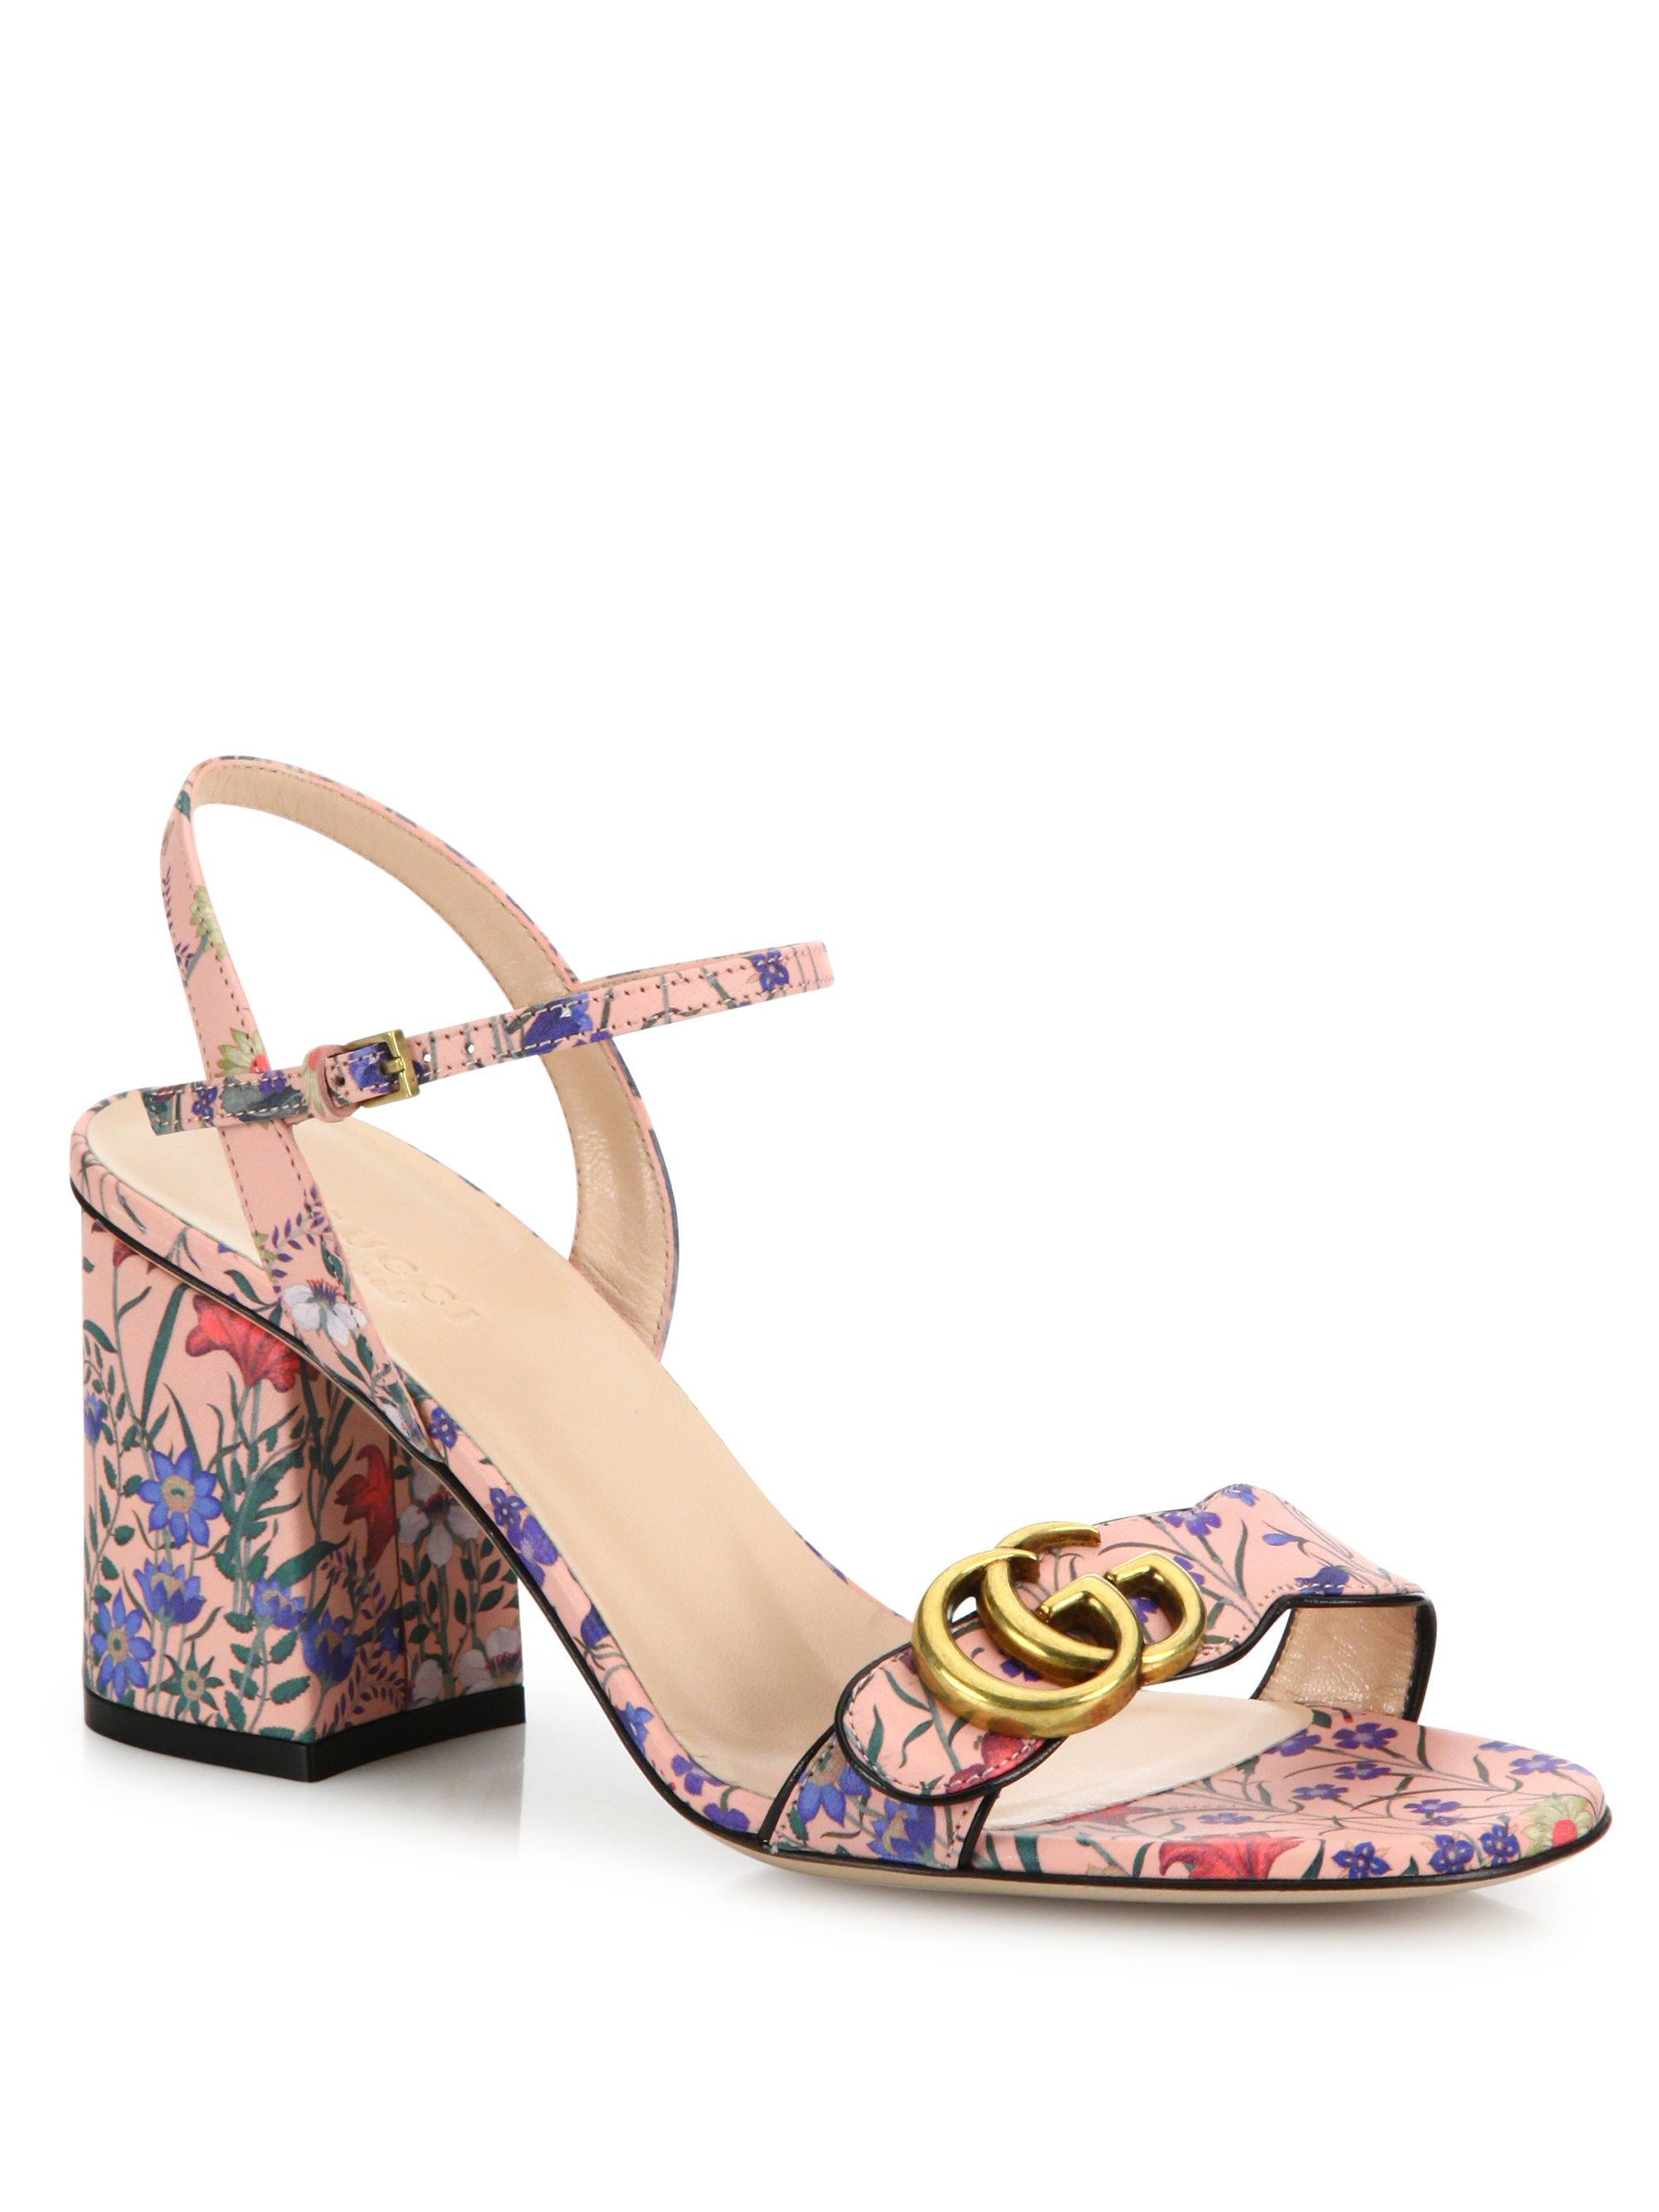 dea062ffd Gucci Marmont Floral-print Leather Block-heel Sandals in Pink - Lyst